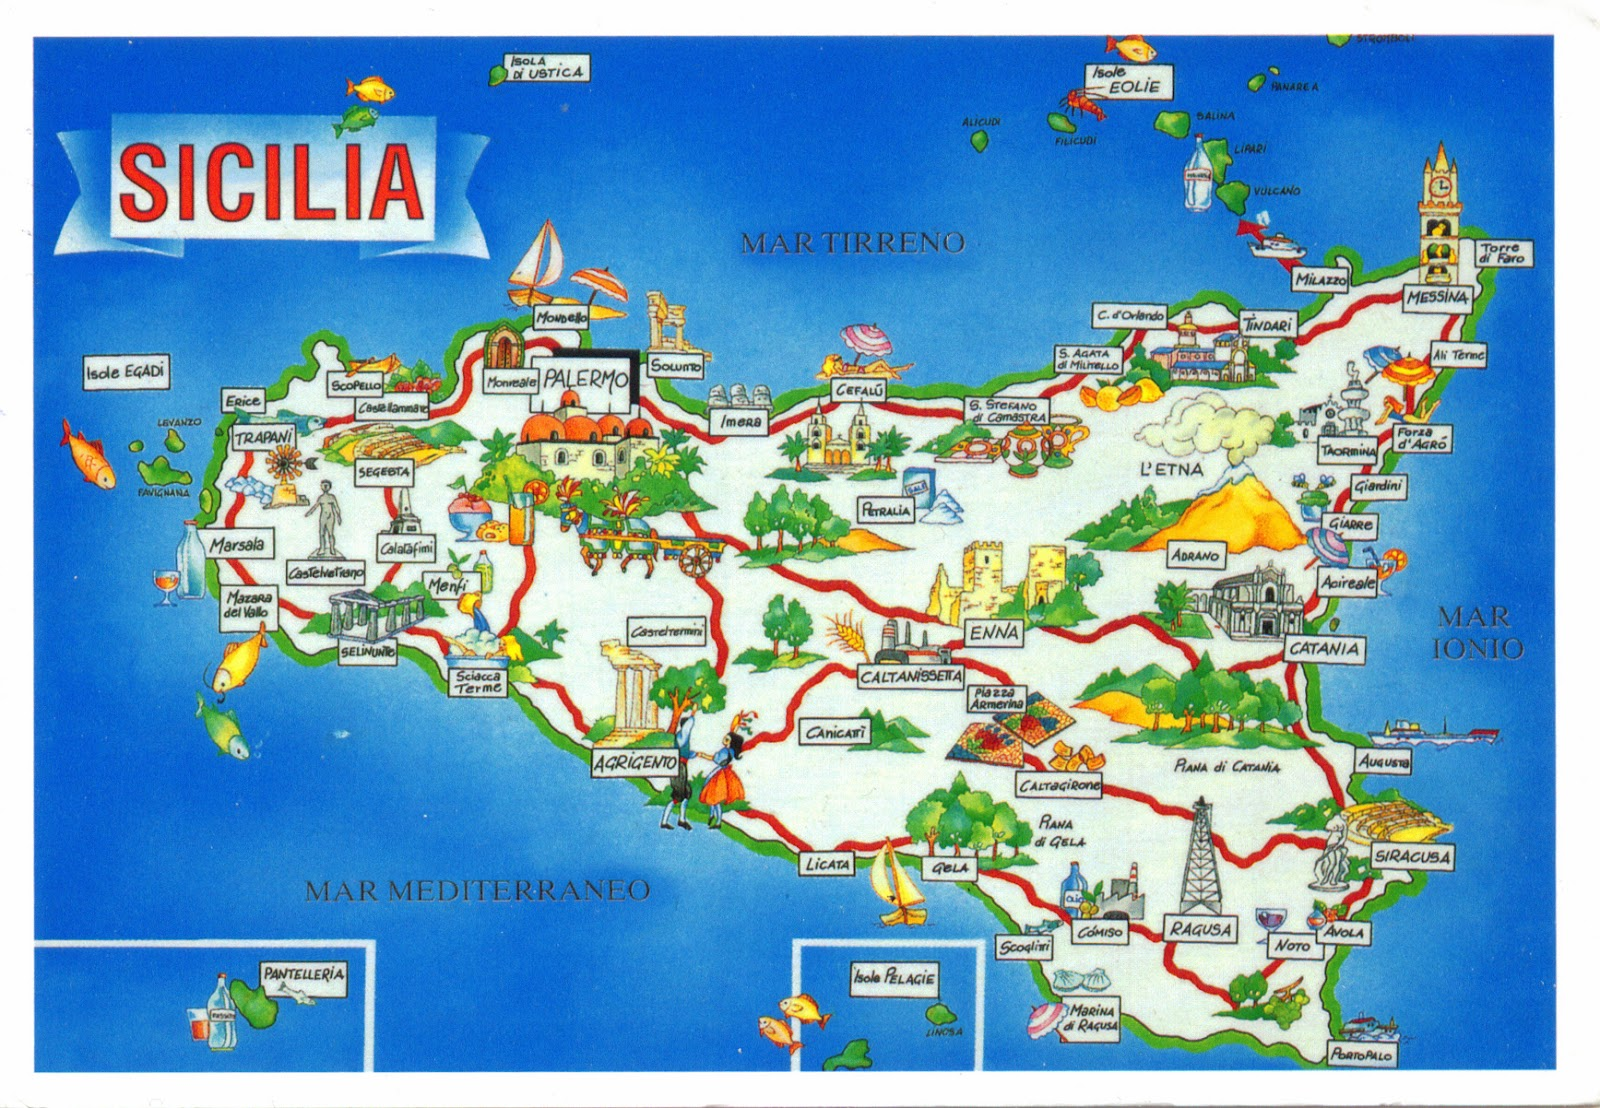 Sicily On Map Of Italy.World Come To My Home 0963 0964 1907 2931 2981 Italy Sicily